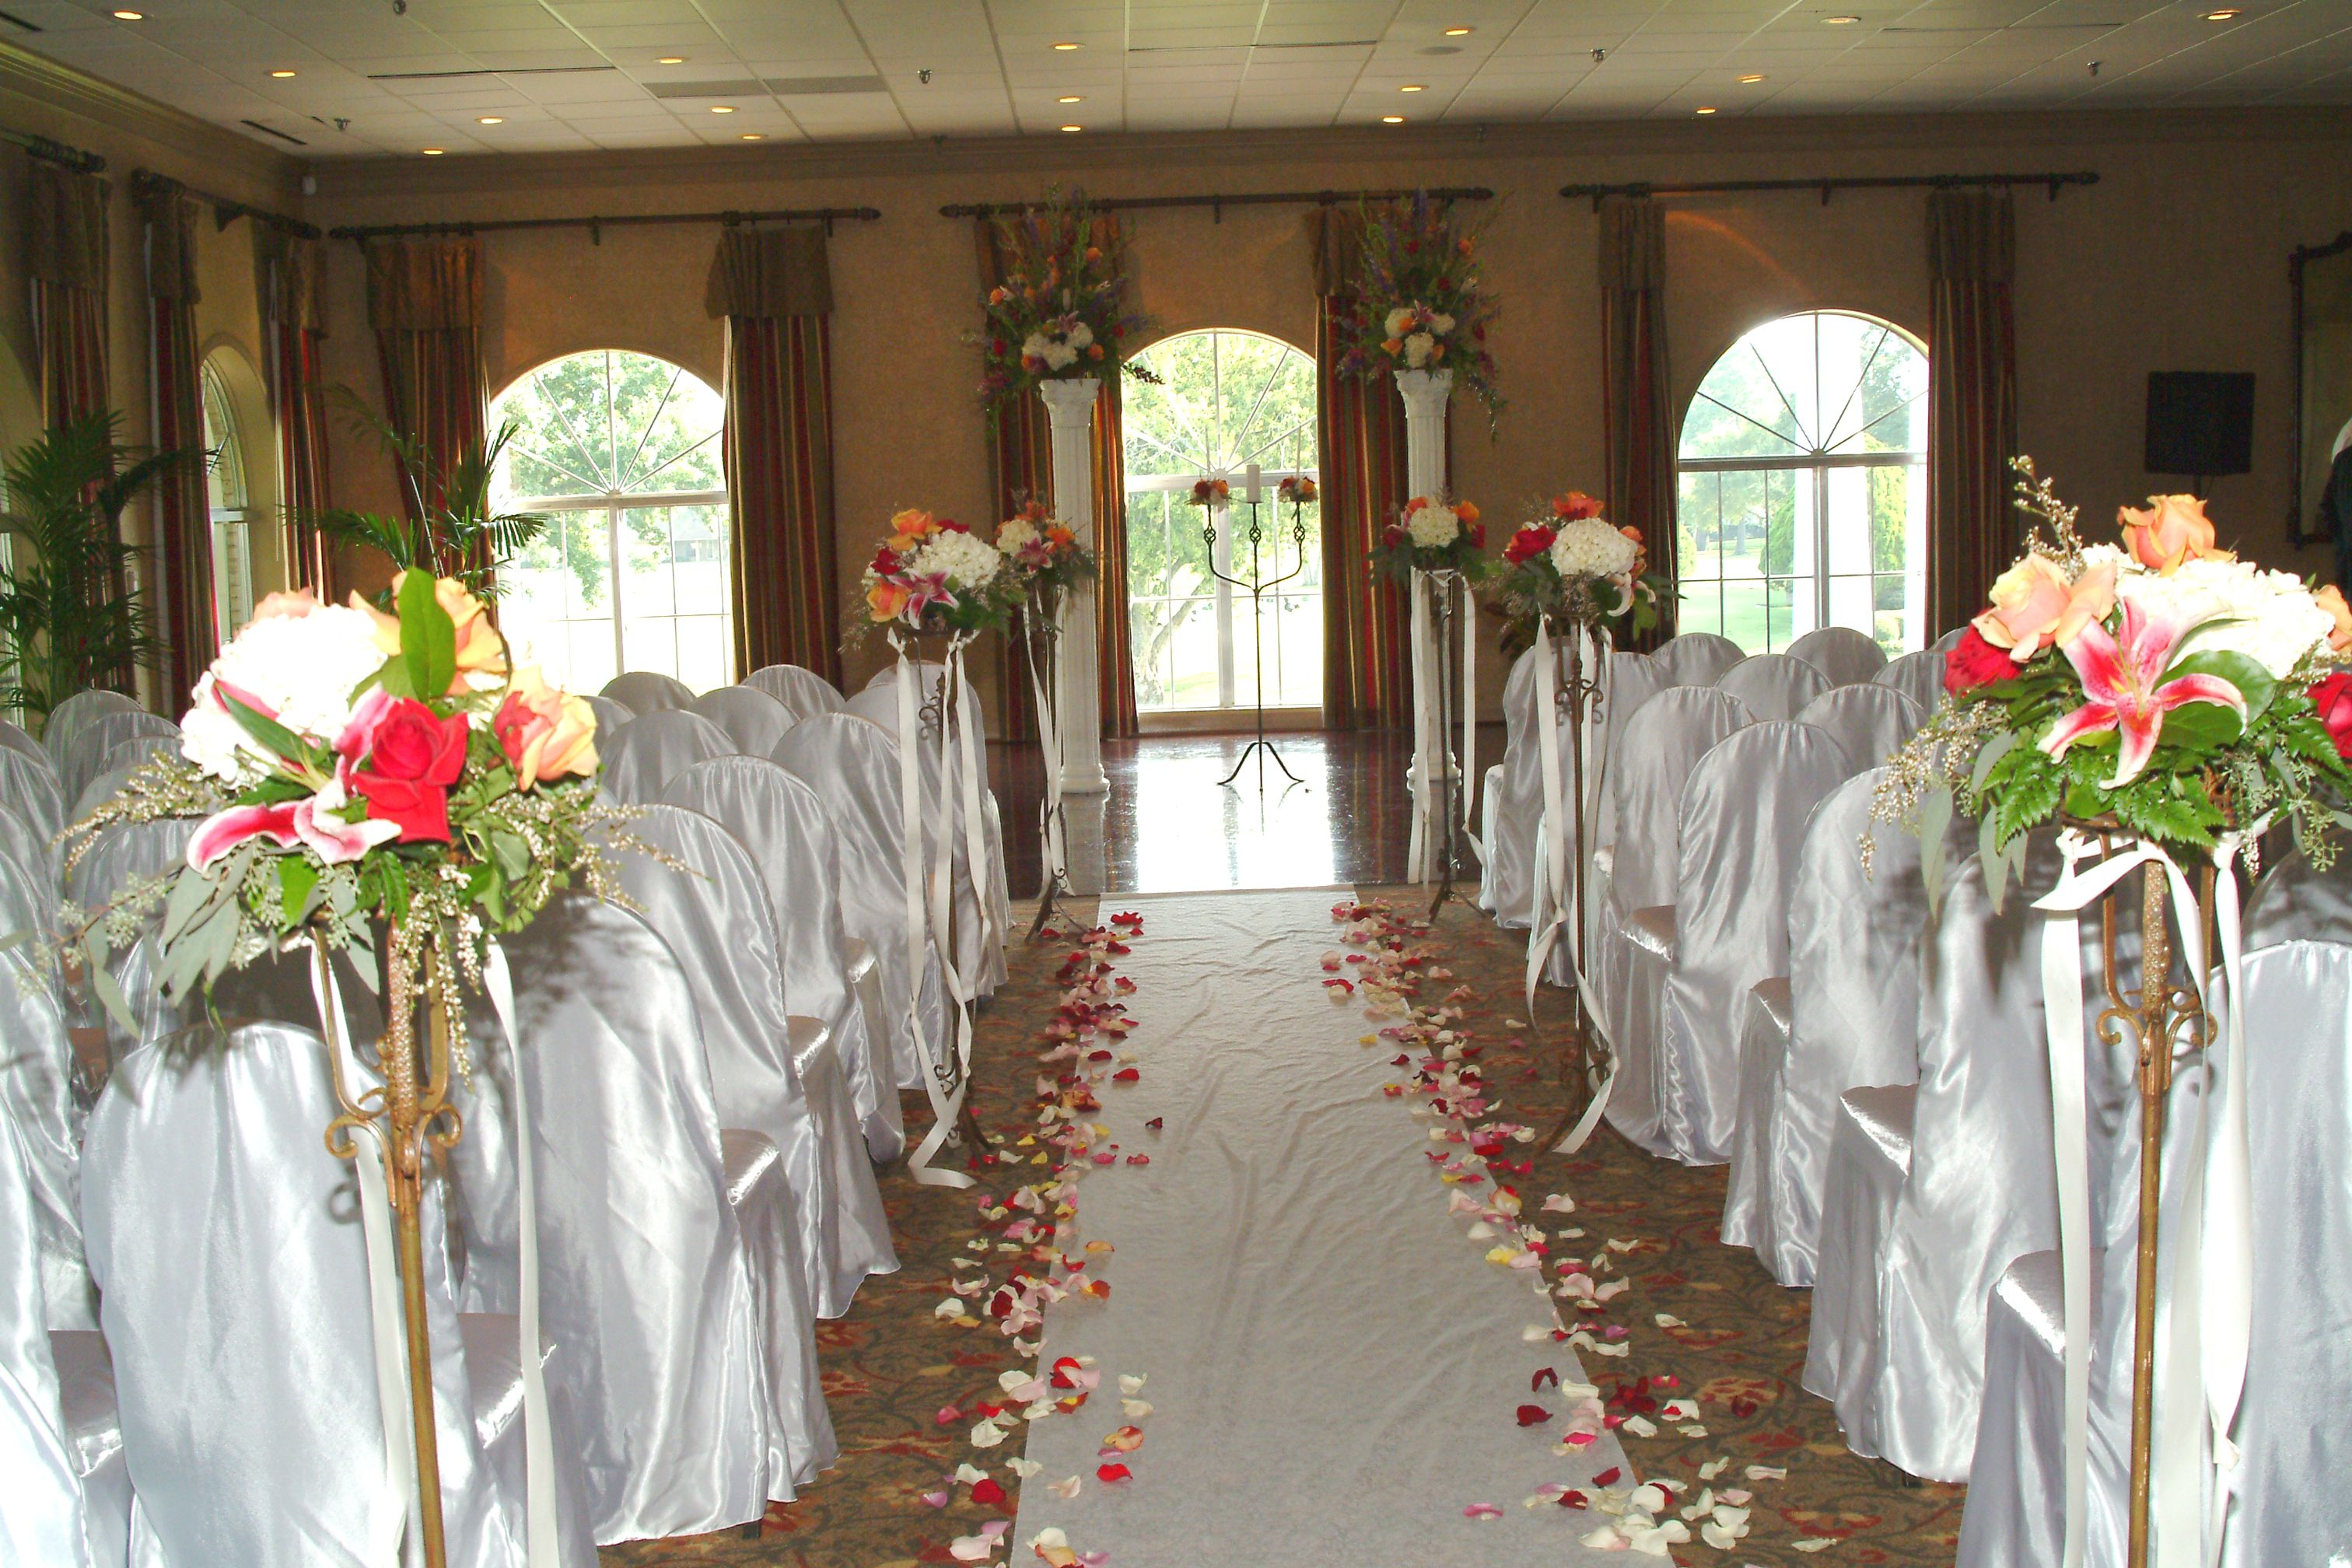 Indoor Ceremony in the Garden Room with Satin Fitted Chair Covers